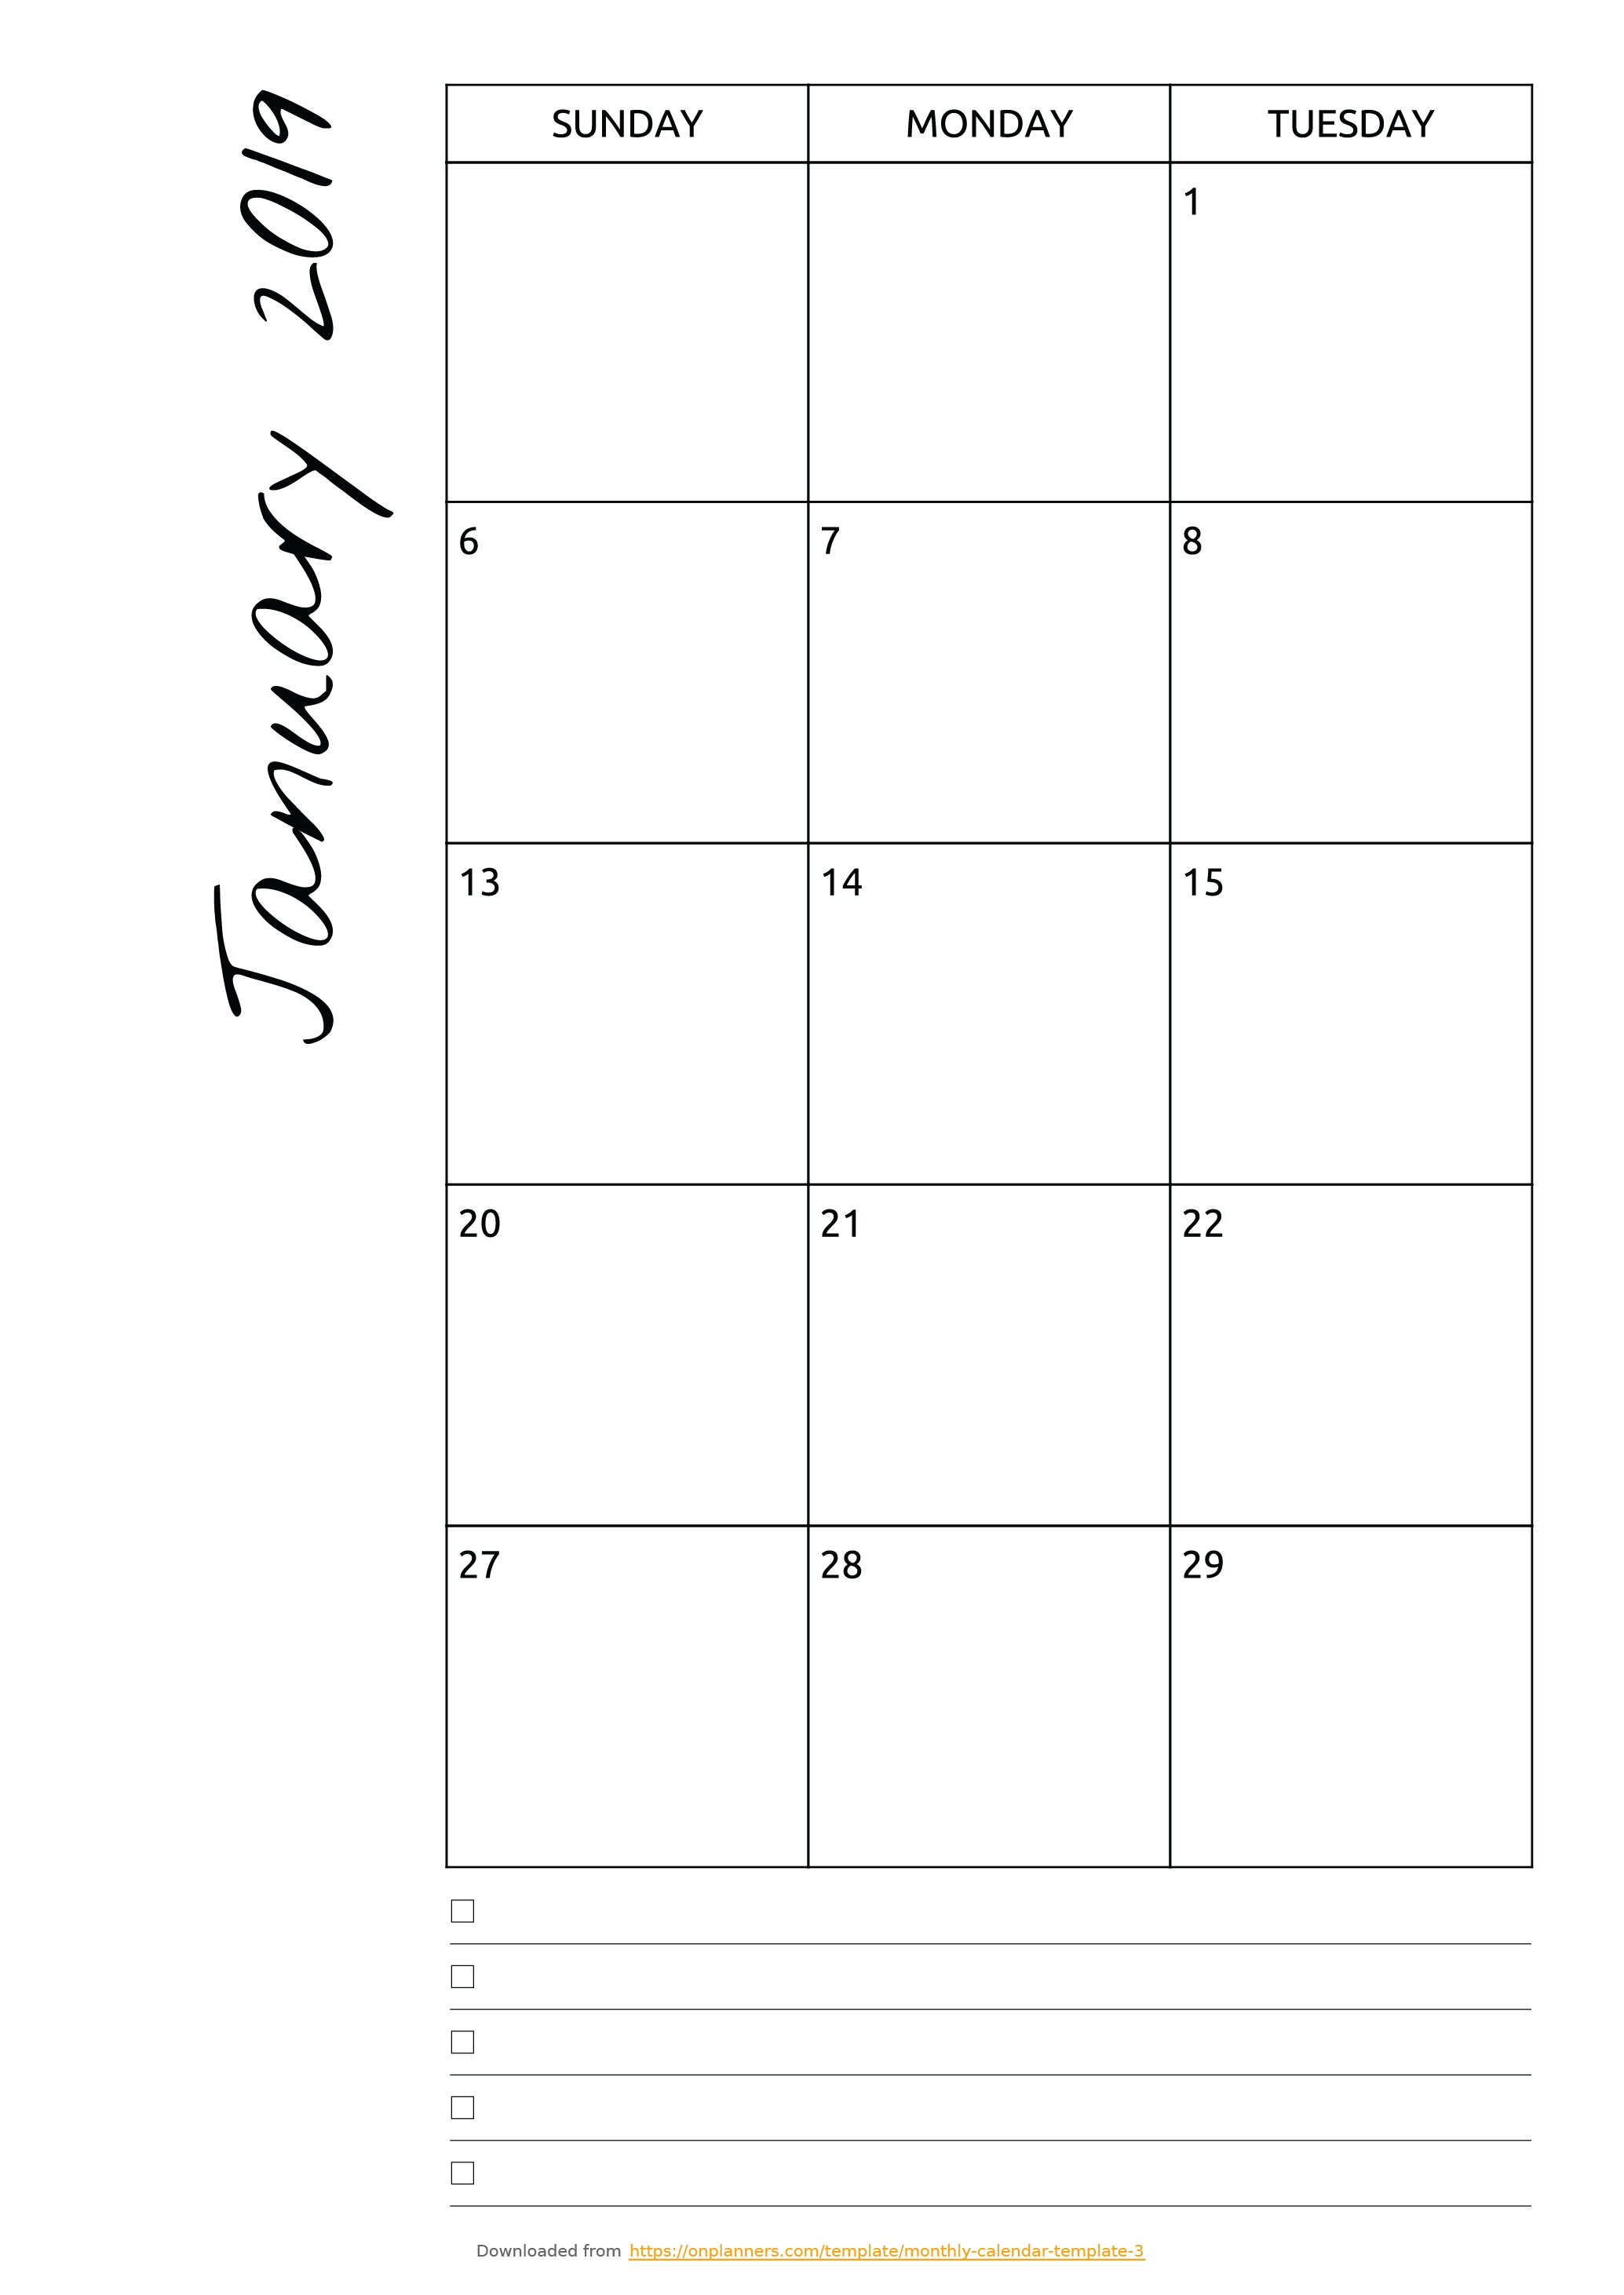 Free Printable Monthly Calendar With Notes Pdf Download regarding Blank Calendar Template With Notes